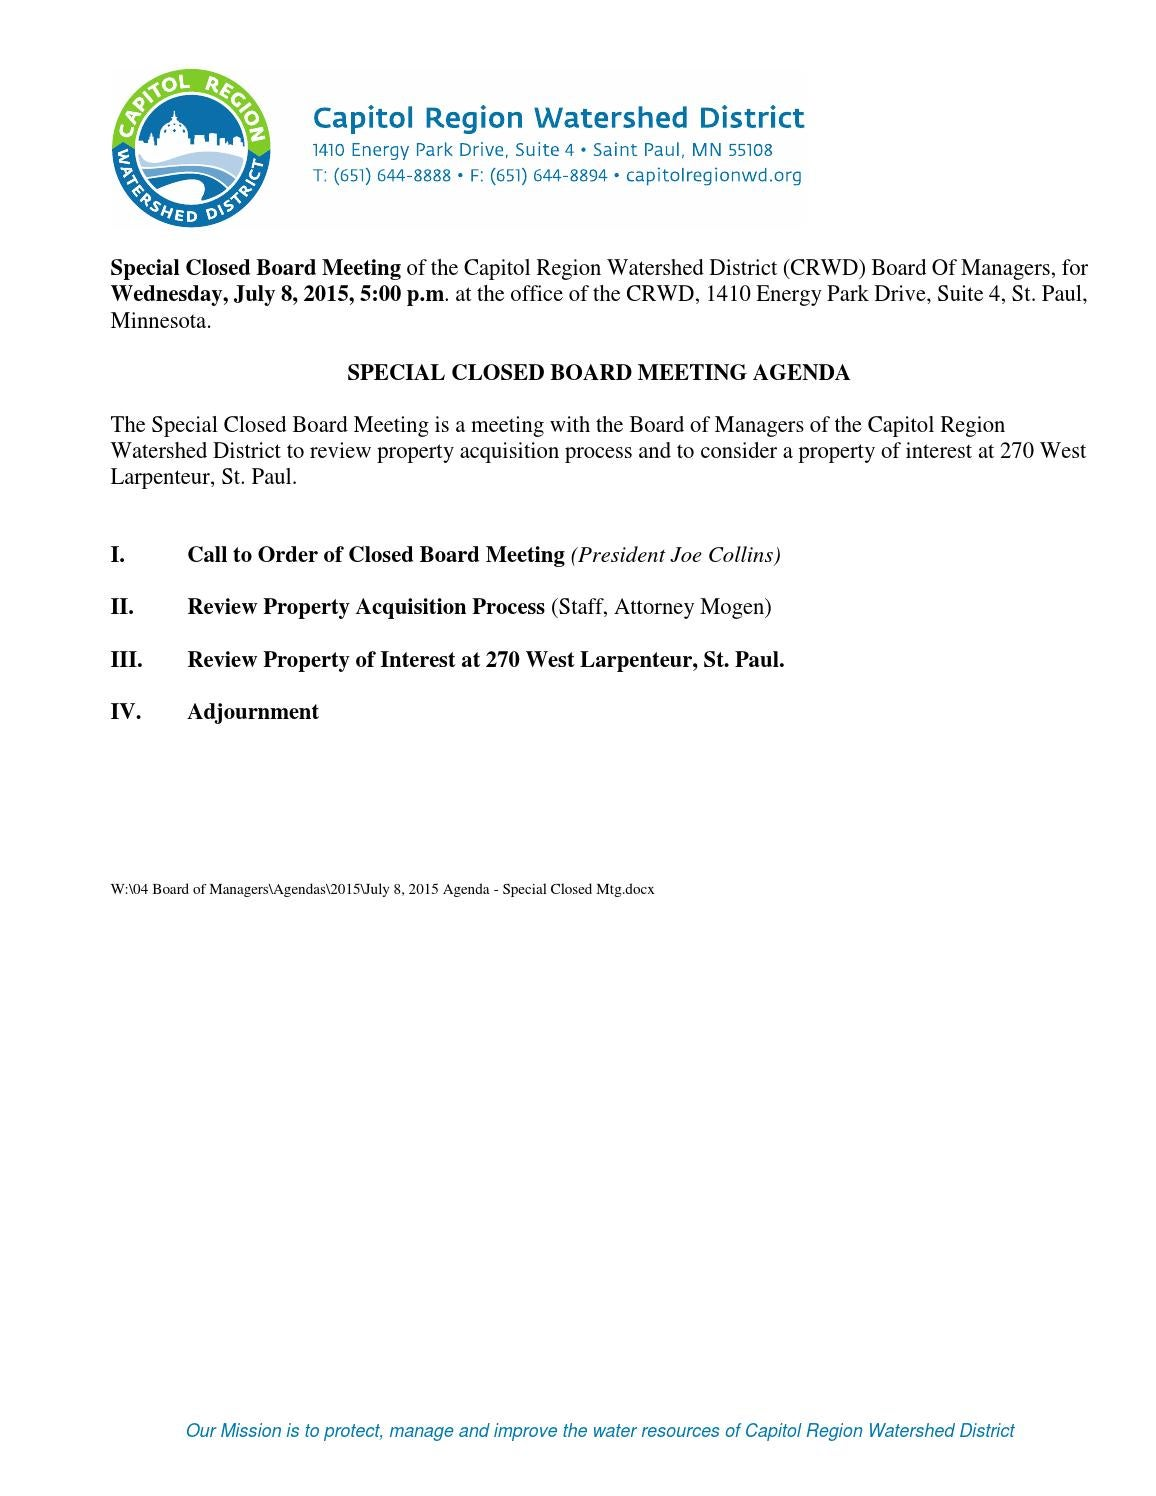 Board Of Managers Meeting Packet July 8 2015 By Capitol Region Watershed District Issuu